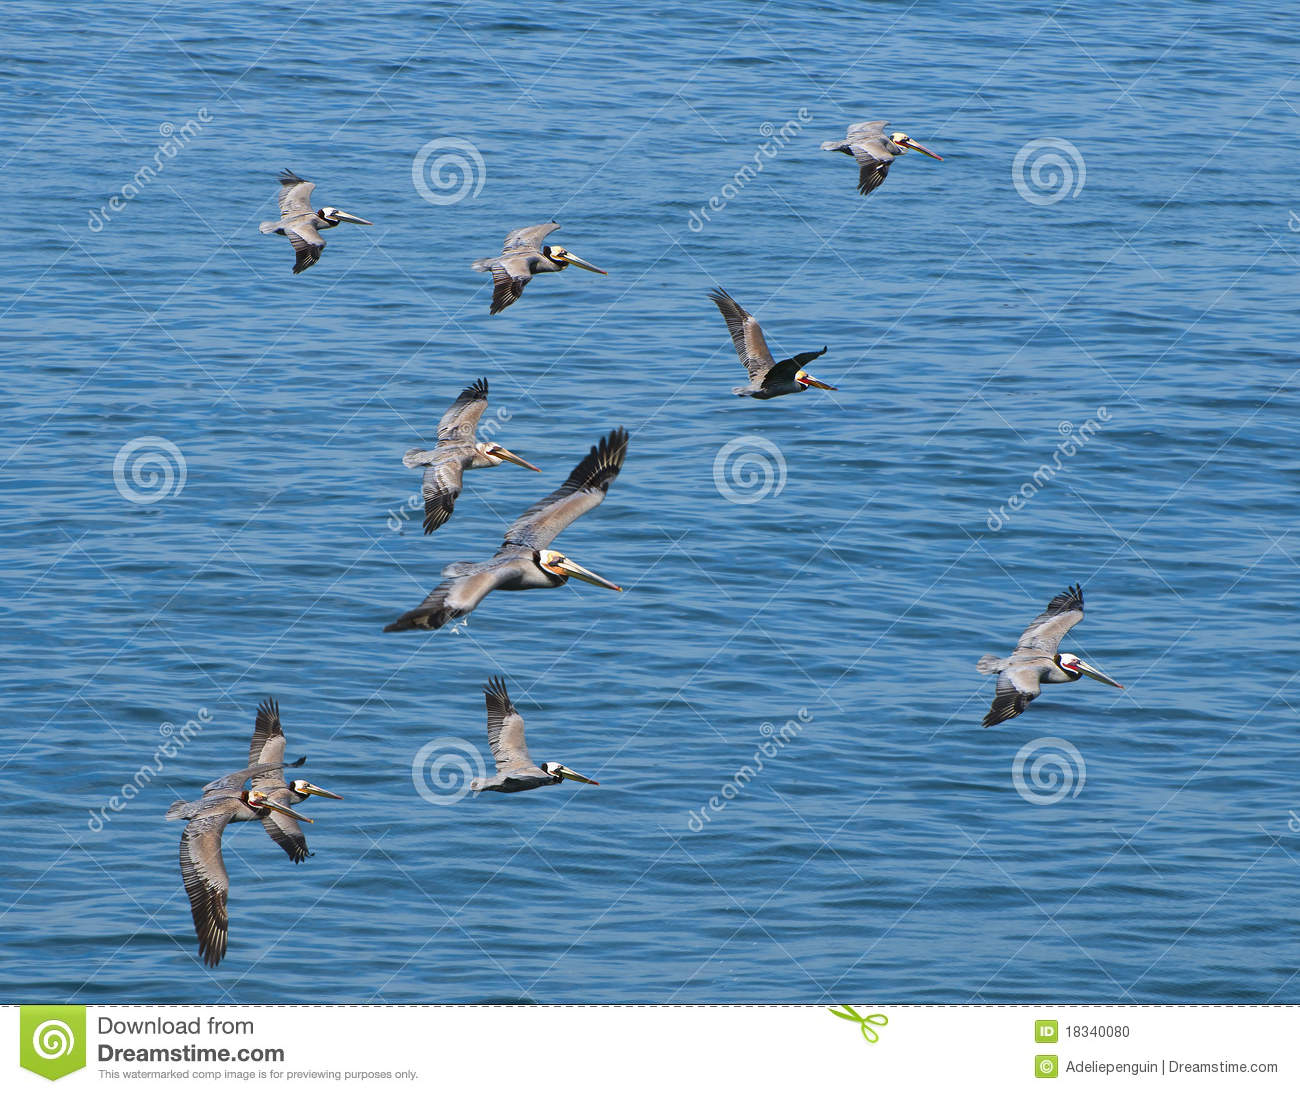 Download Pelicans Flying, LaJolla California Stock Photo - Image of water, pelicans: 18340080